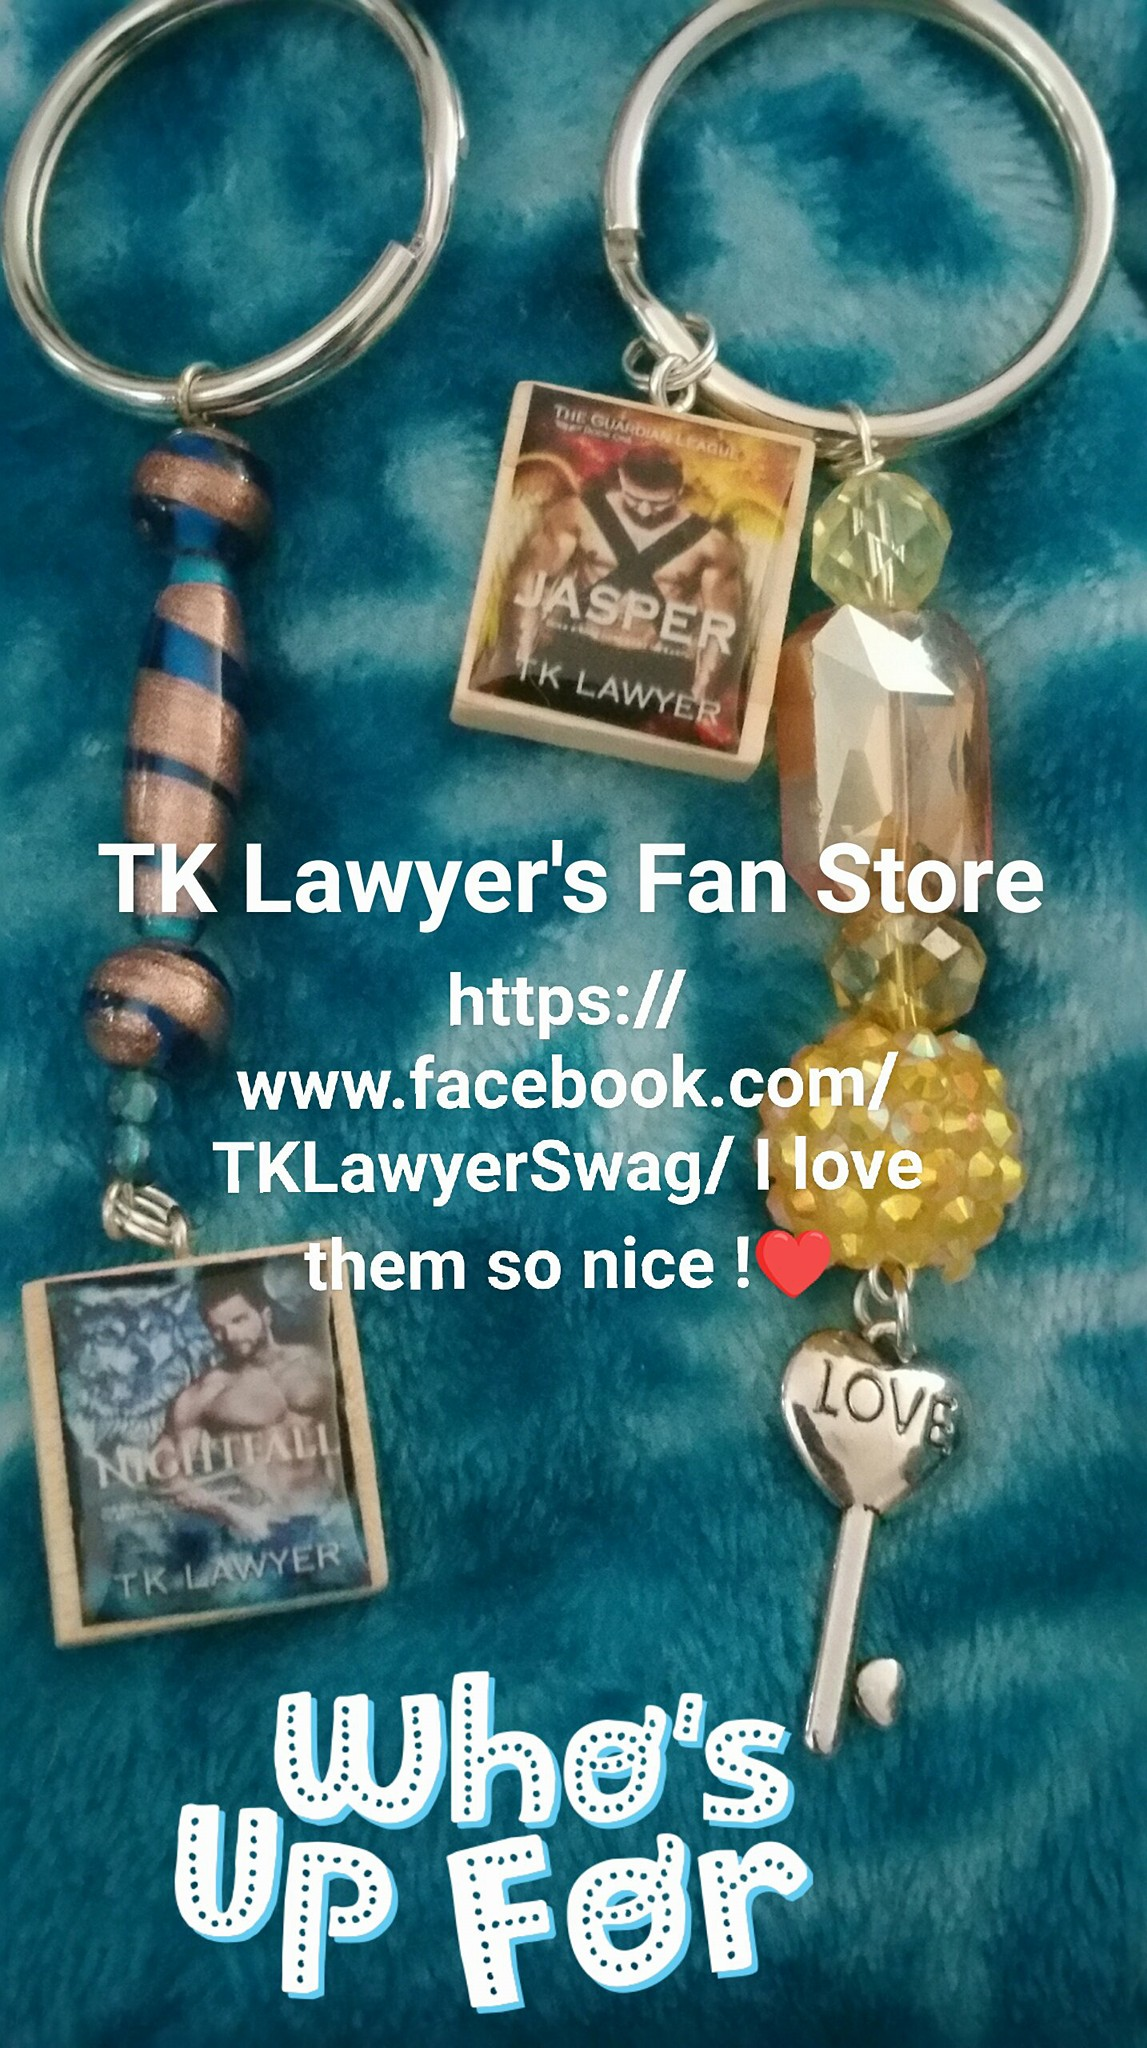 Fan Store Profile pic and advertisement